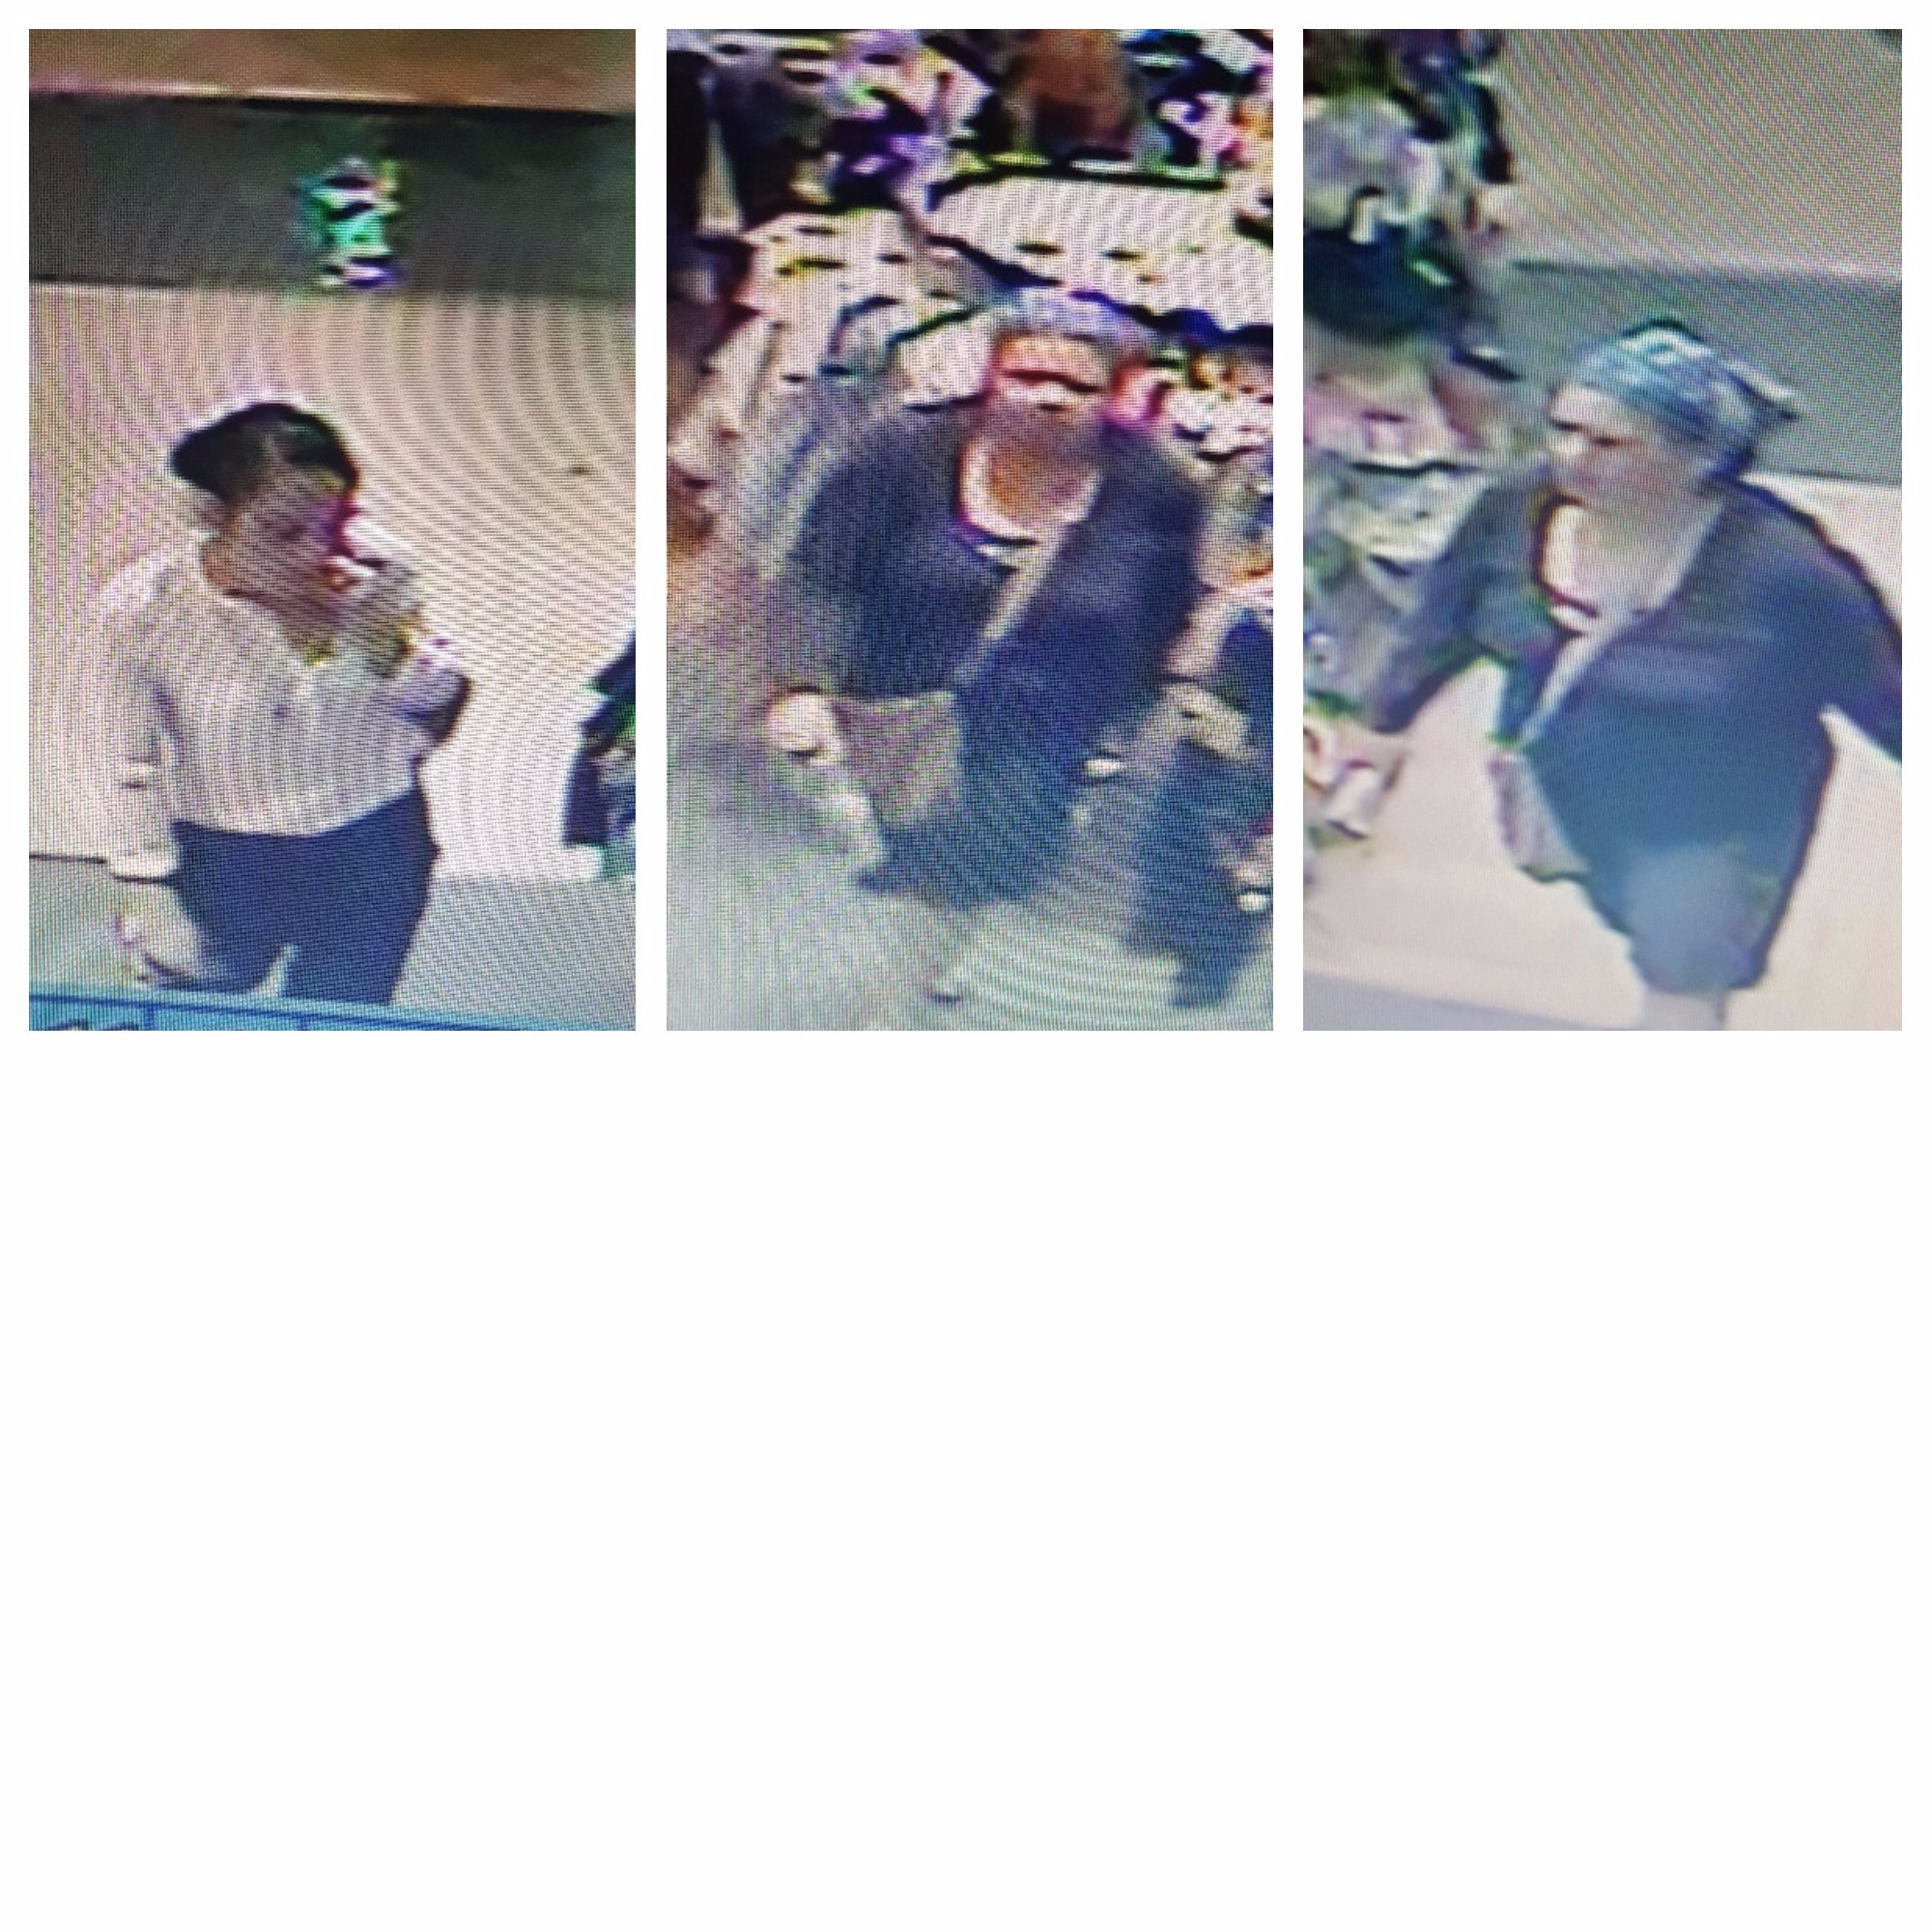 Sunnyside mall purse theft suspects